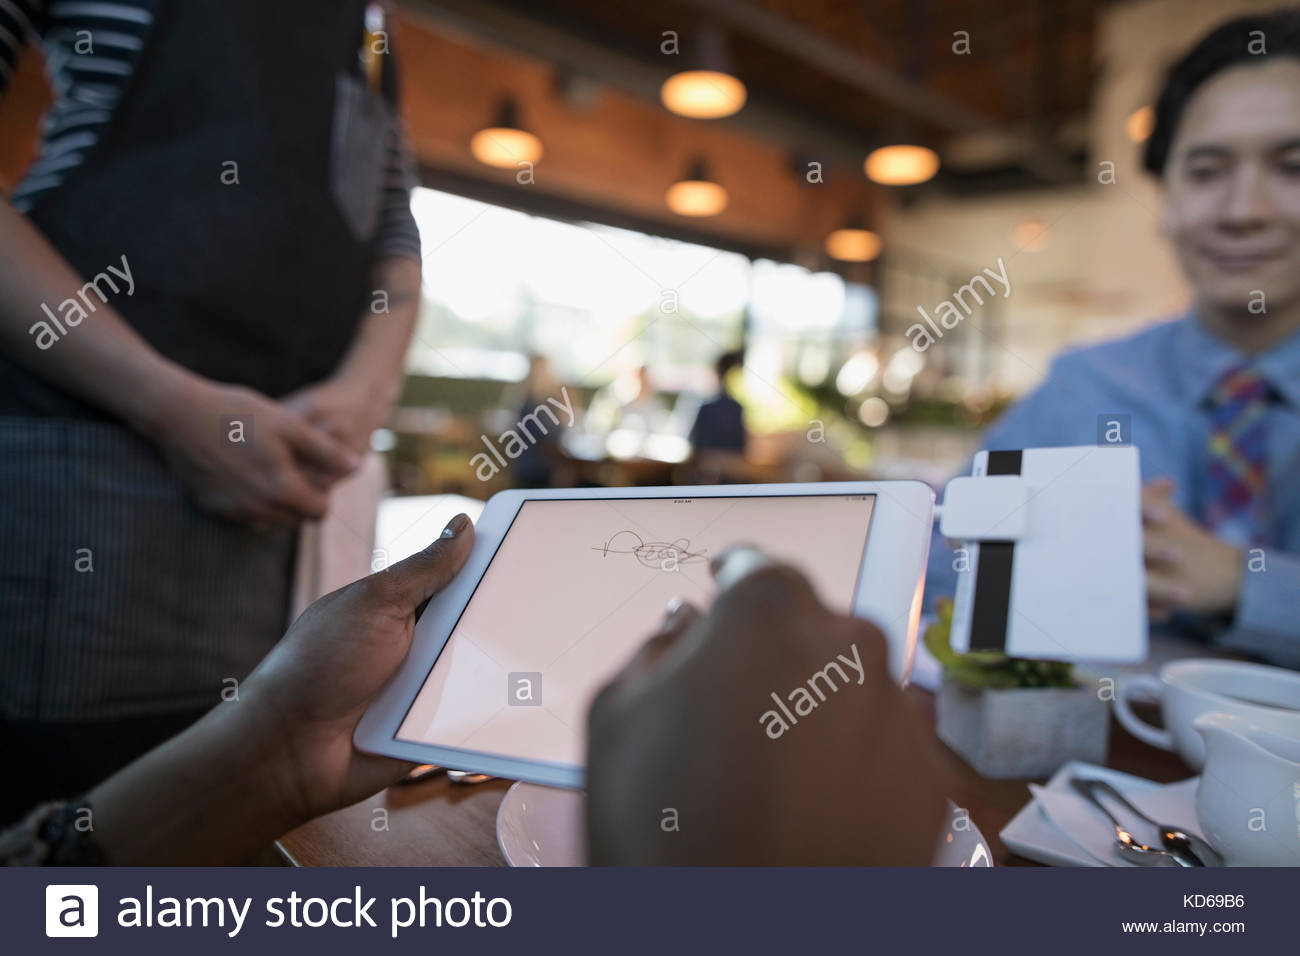 Female customer paying, signing digital tablet credit card swiper at restaurant table - Stock Image